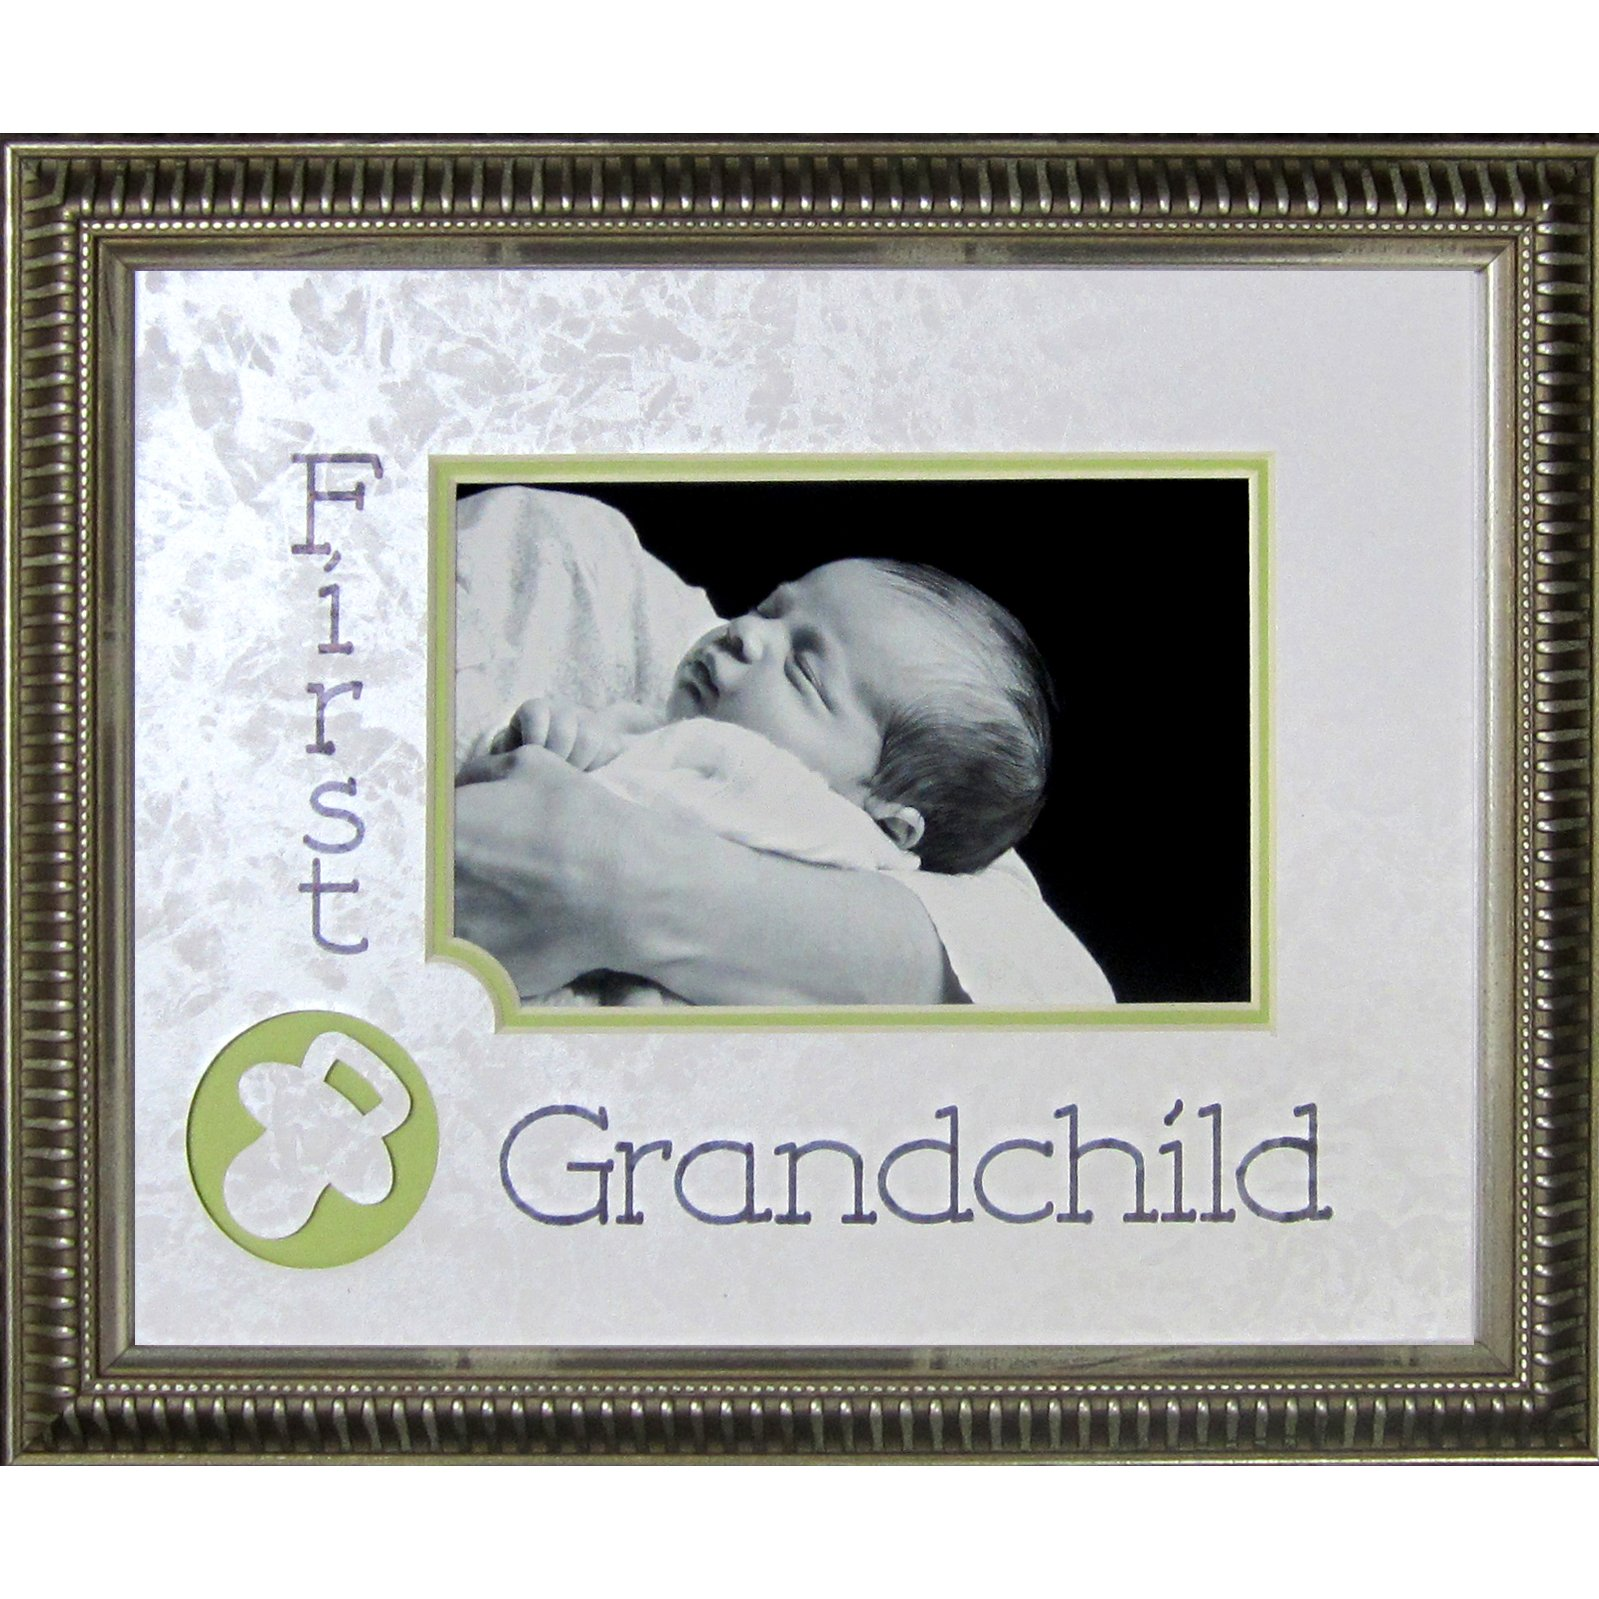 First Grandchild Photo Frame